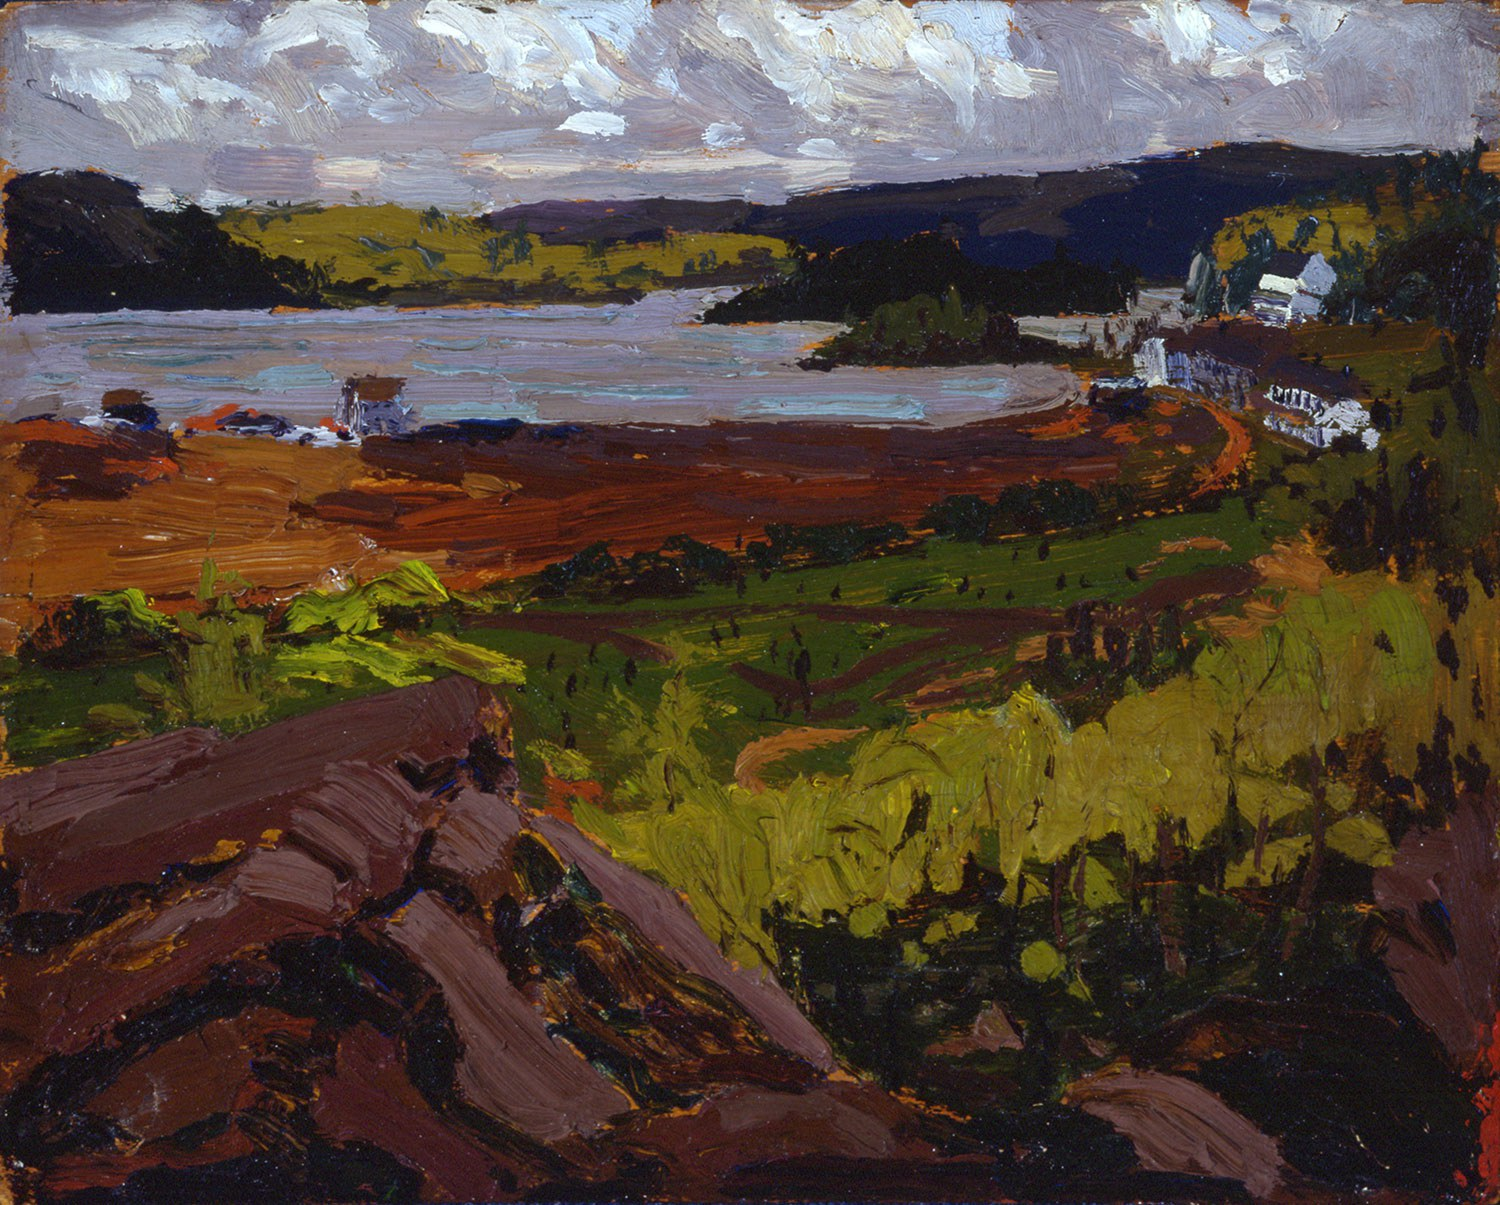 Tom Thomson, Canoe Lake, Mowat Lodge, 1914, oil on plywood, 21.4 x 26.7 cm. Collection of the Tom Thomson Art Gallery, Owen Sound. Gift of the Ontario Heritage Trust and the Estate of Stewart and Letty Bennett, 1988.